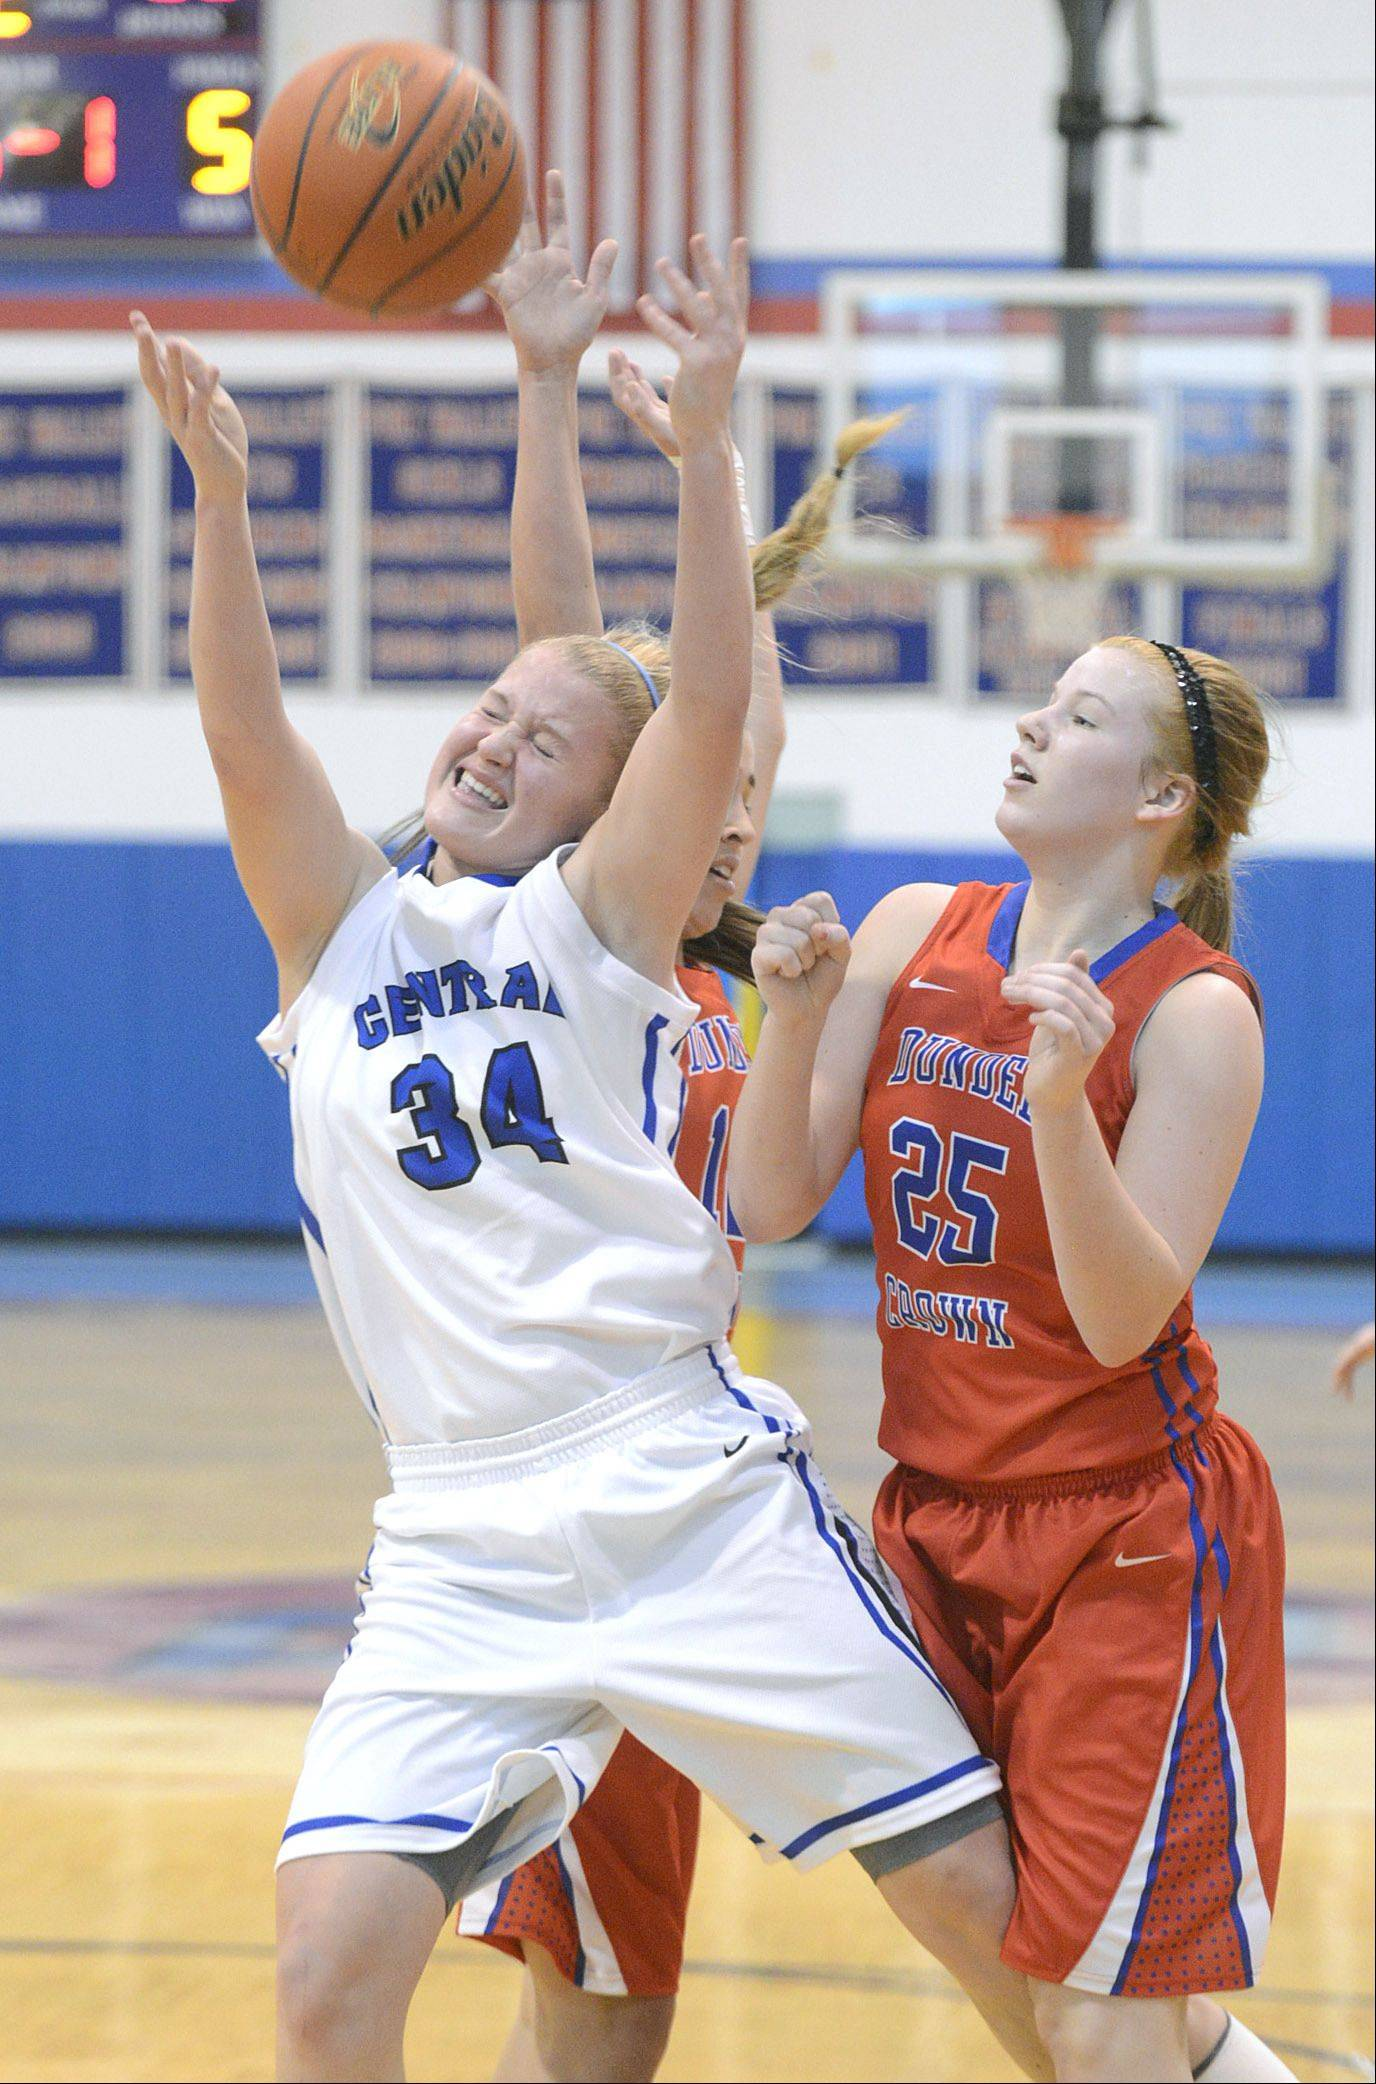 Burlington Central's Sam Pryor is fouled by Dundee-Crown's Lauren Lococo (behind) as she goes up for the hoop in the second quarter on Friday, December 27. Dundee-Crown's Allison Michalski on right.